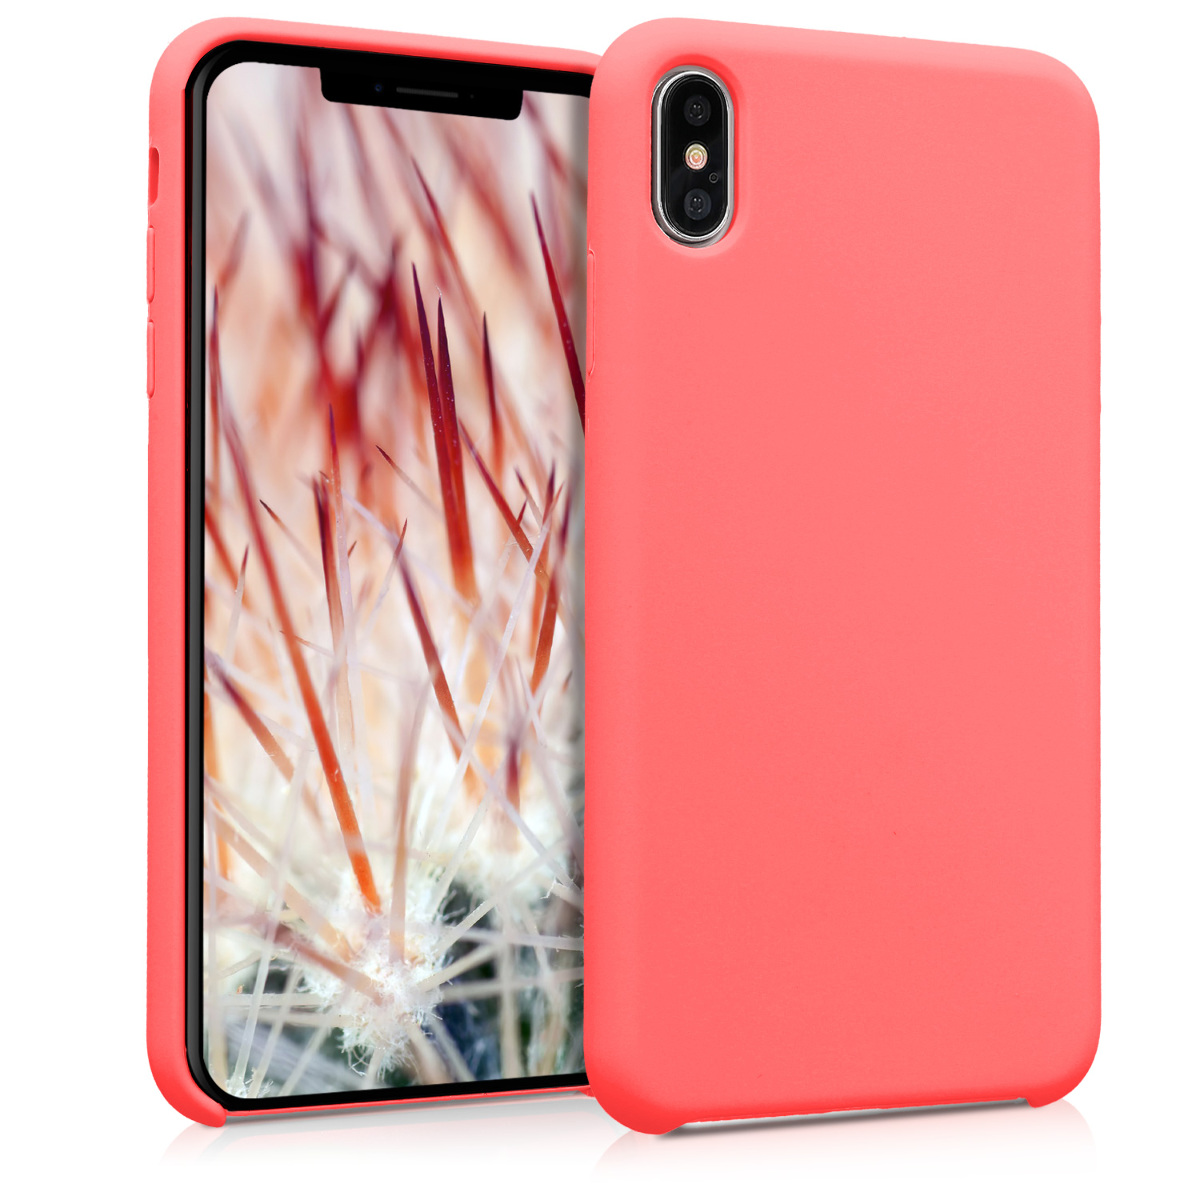 KW TPU Θήκη Σιλικόνης Apple iPhone XS Max - Soft Flexible Rubber Protective Cover - Neon Coral (45909.103)